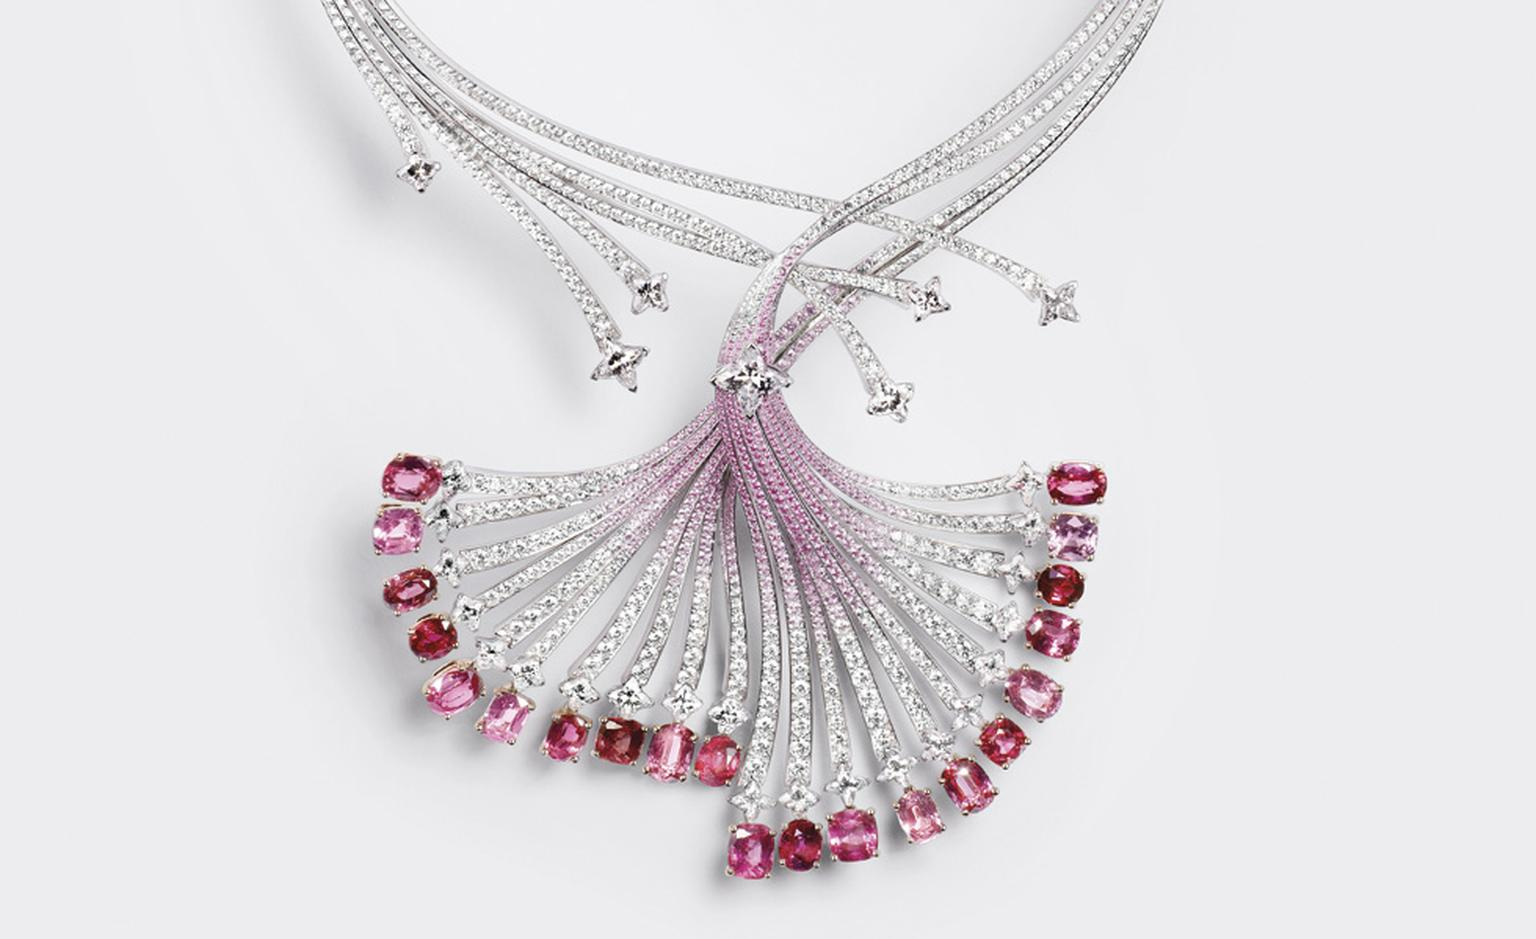 Louis Vuitton L'Ame du Voyage necklace 3 with diamonds and sapphires